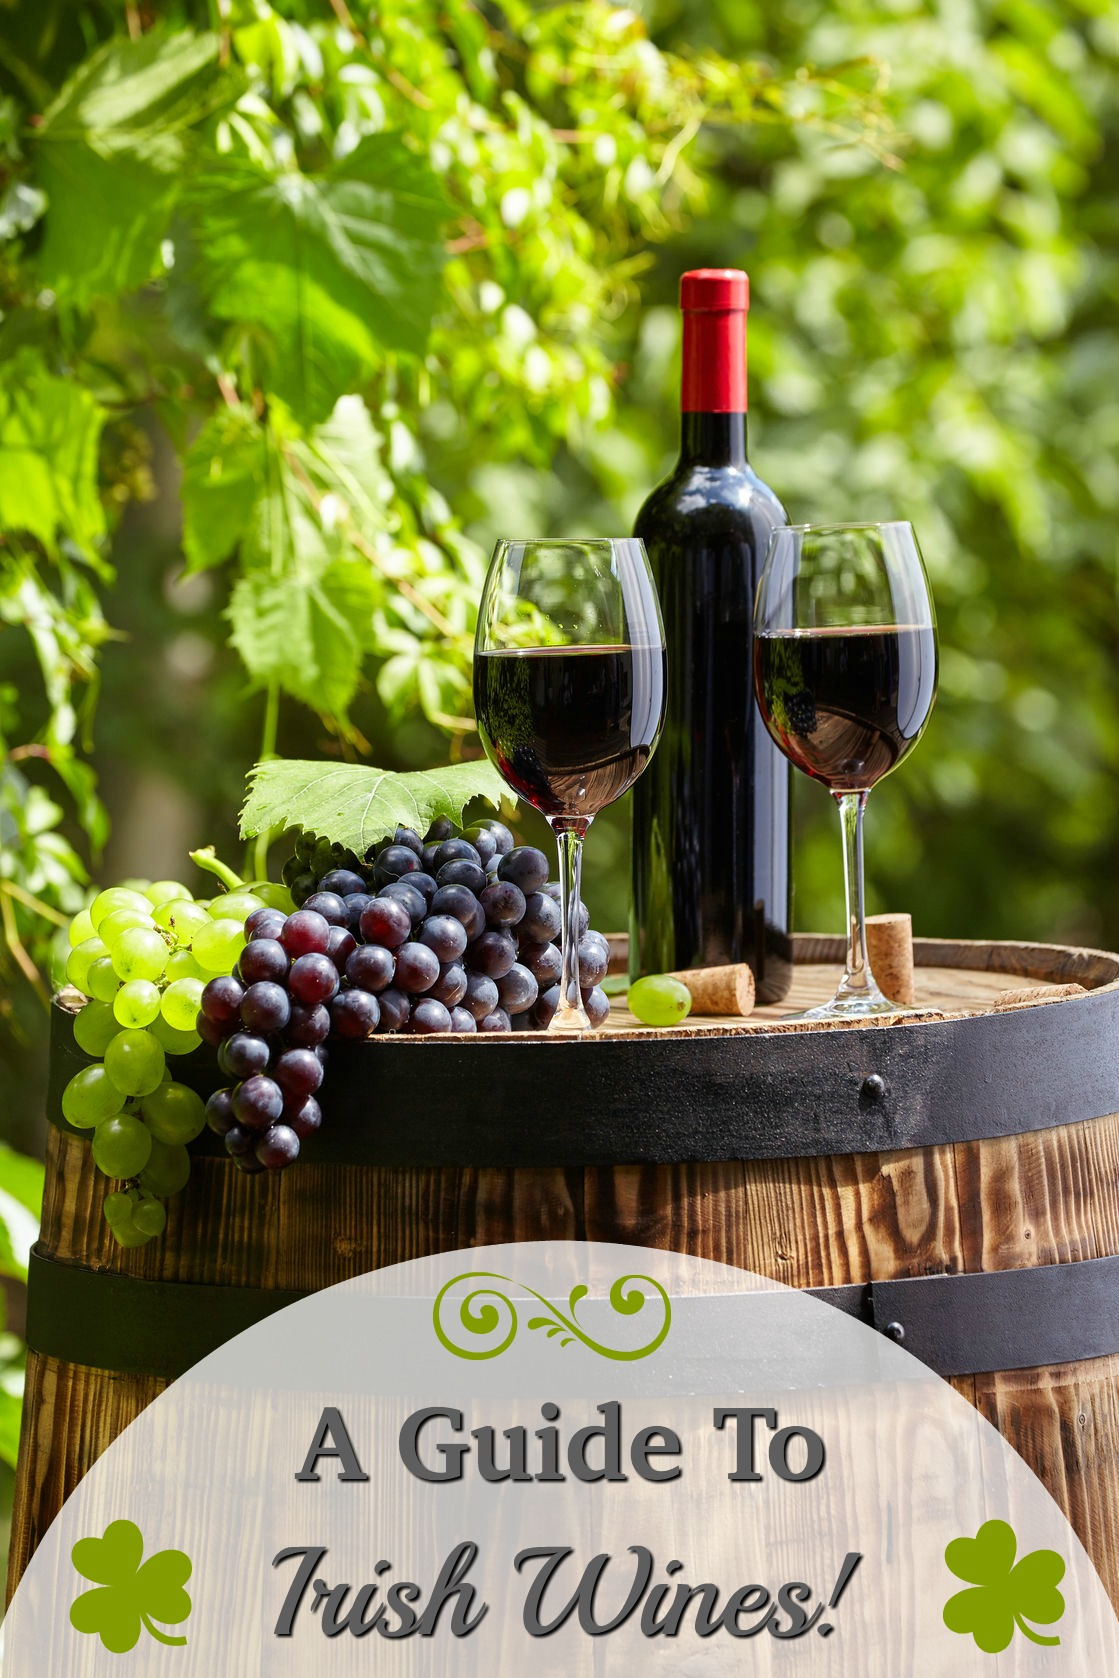 Did you know that Ireland produces more than just great beer? Just in Time for St. Patricks Day - our Guide to Irish Wines! #StPatricksDay